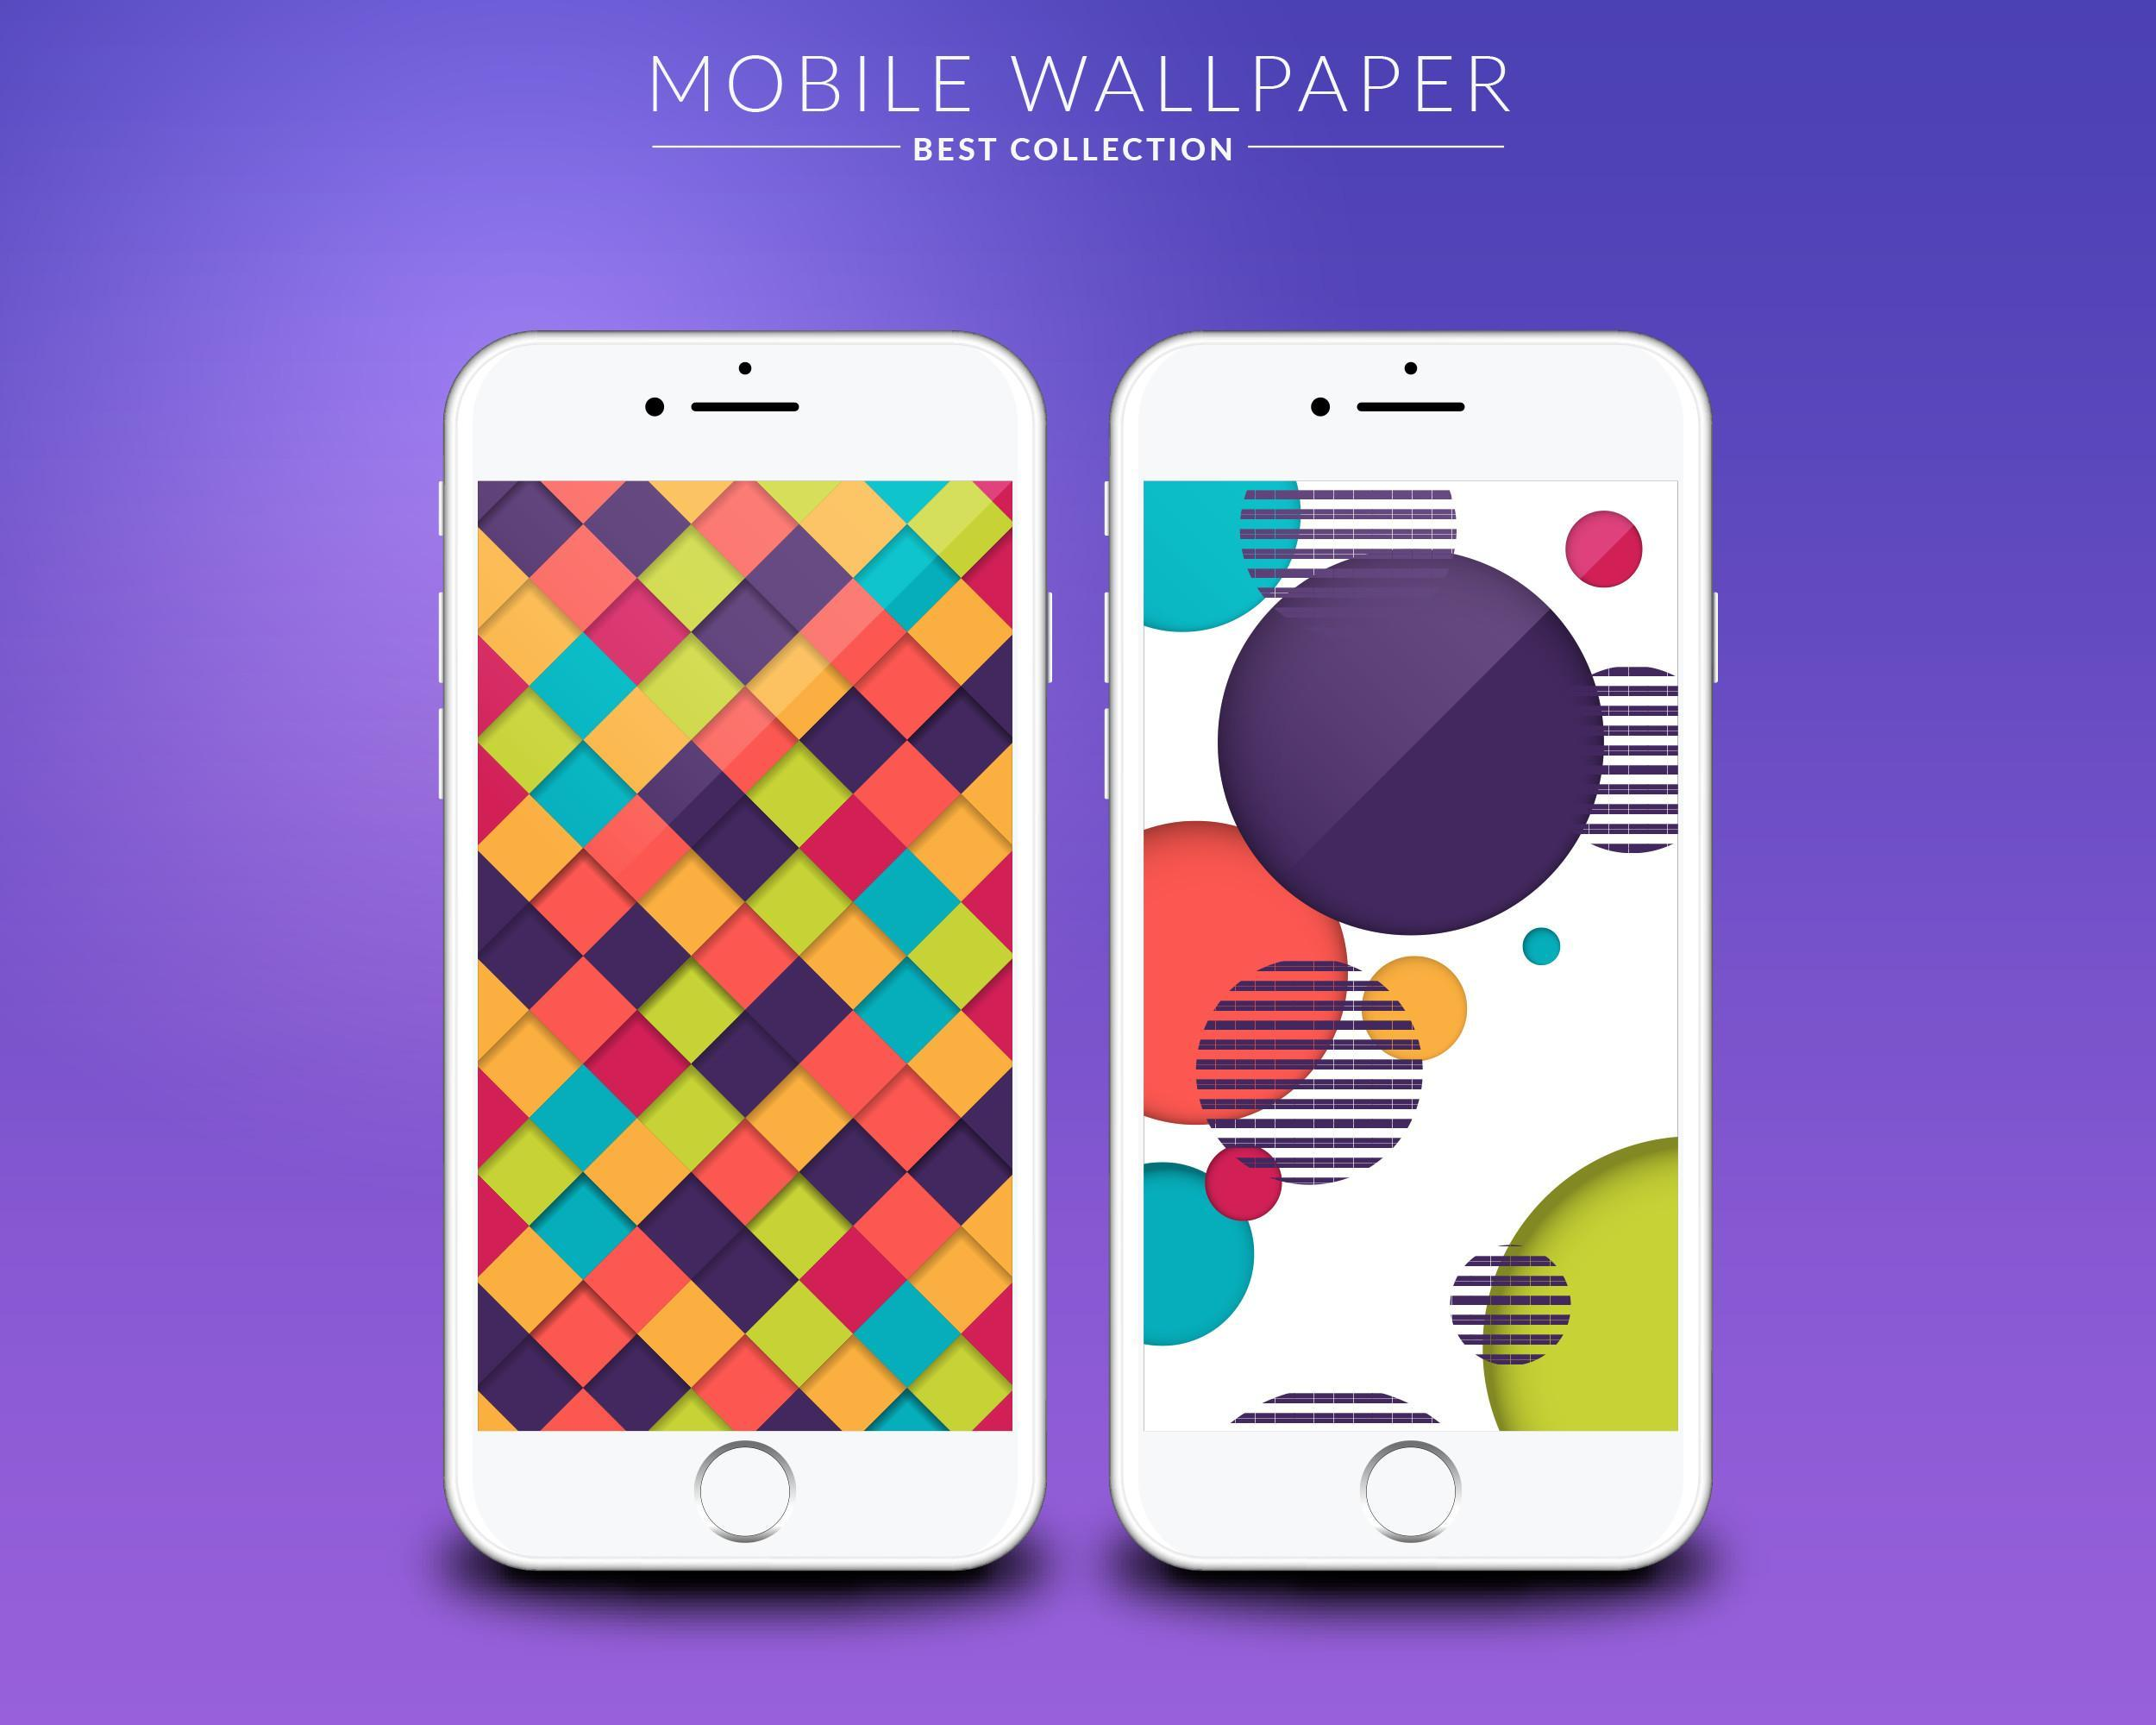 Hd Wallpapers Wallpaper For Mobile 3d Wallpaper For